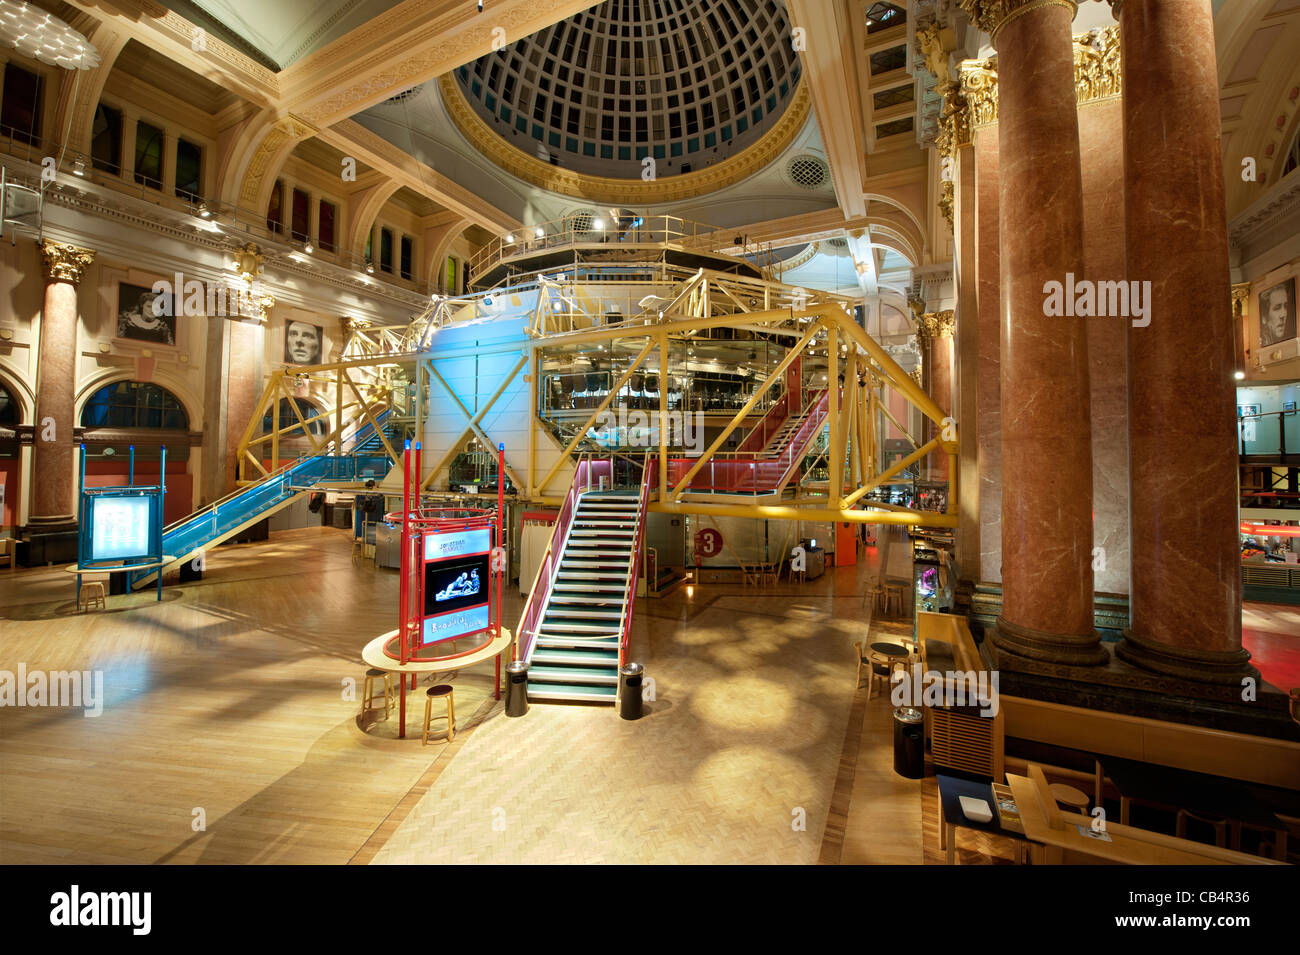 The inside of the Royal Exchange Theatre performance venue in Manchester. - Stock Image